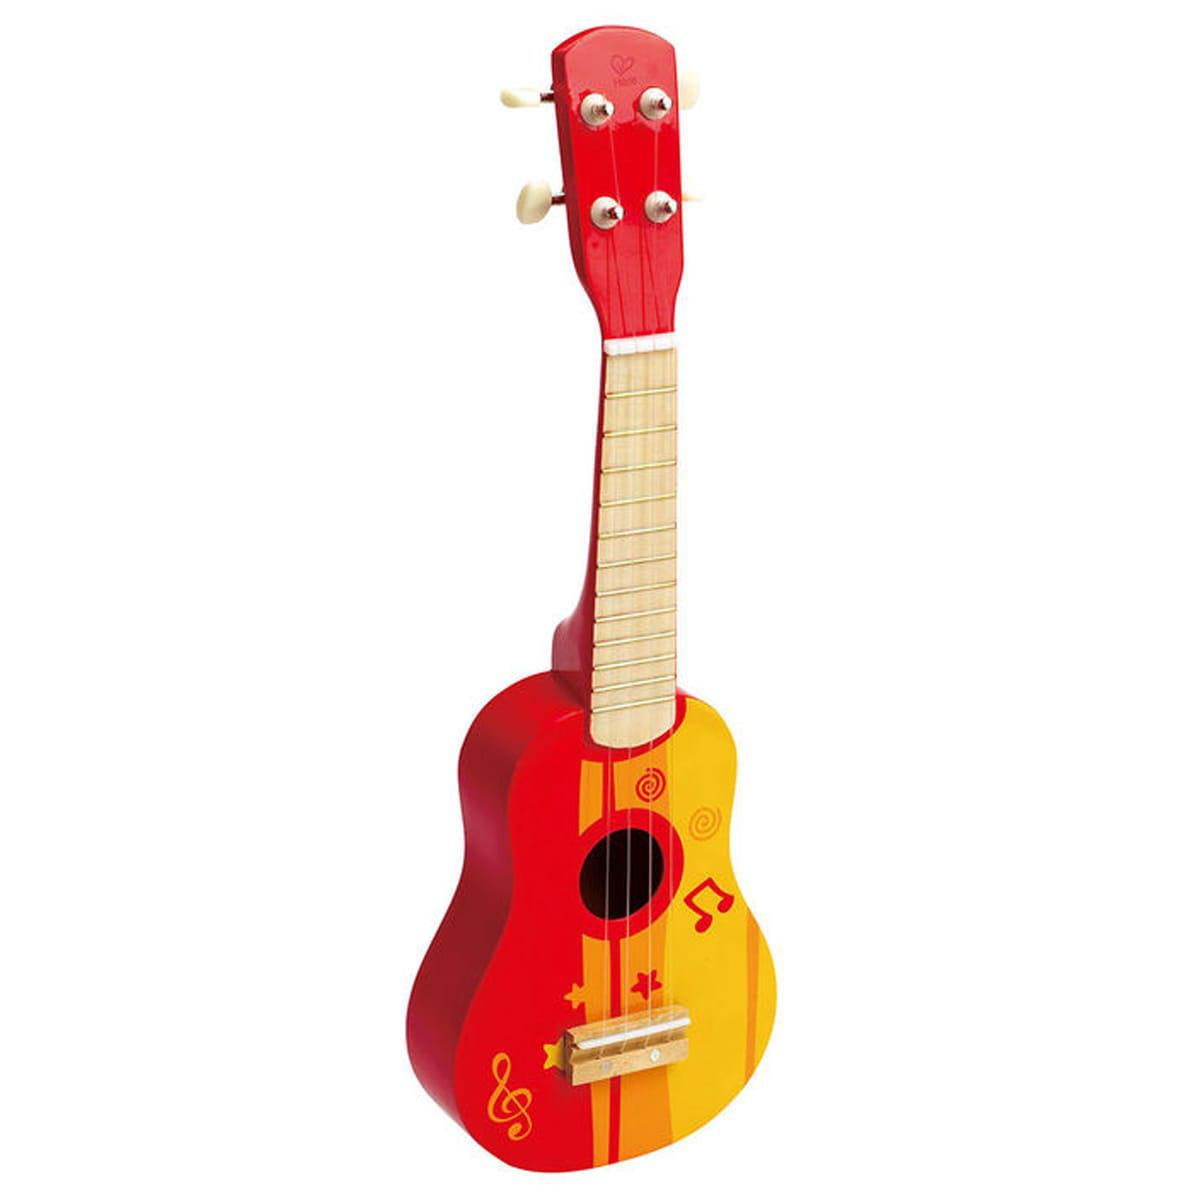 UKULELE by Hape Guitare en bois rouge